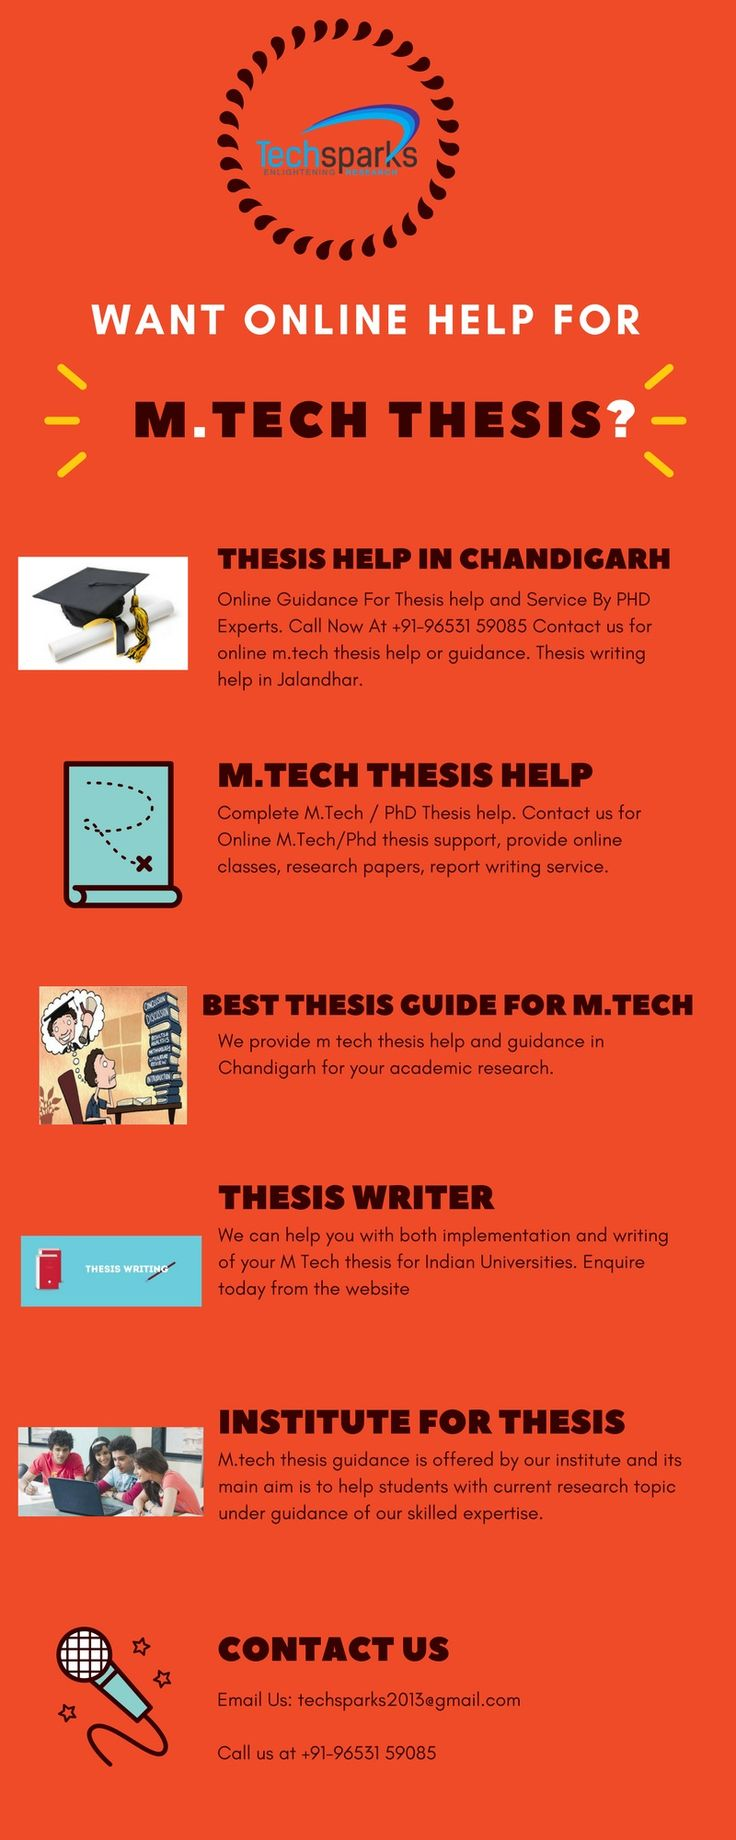 001 Academic Research Paper Writing Services In India Marvelous Best Full